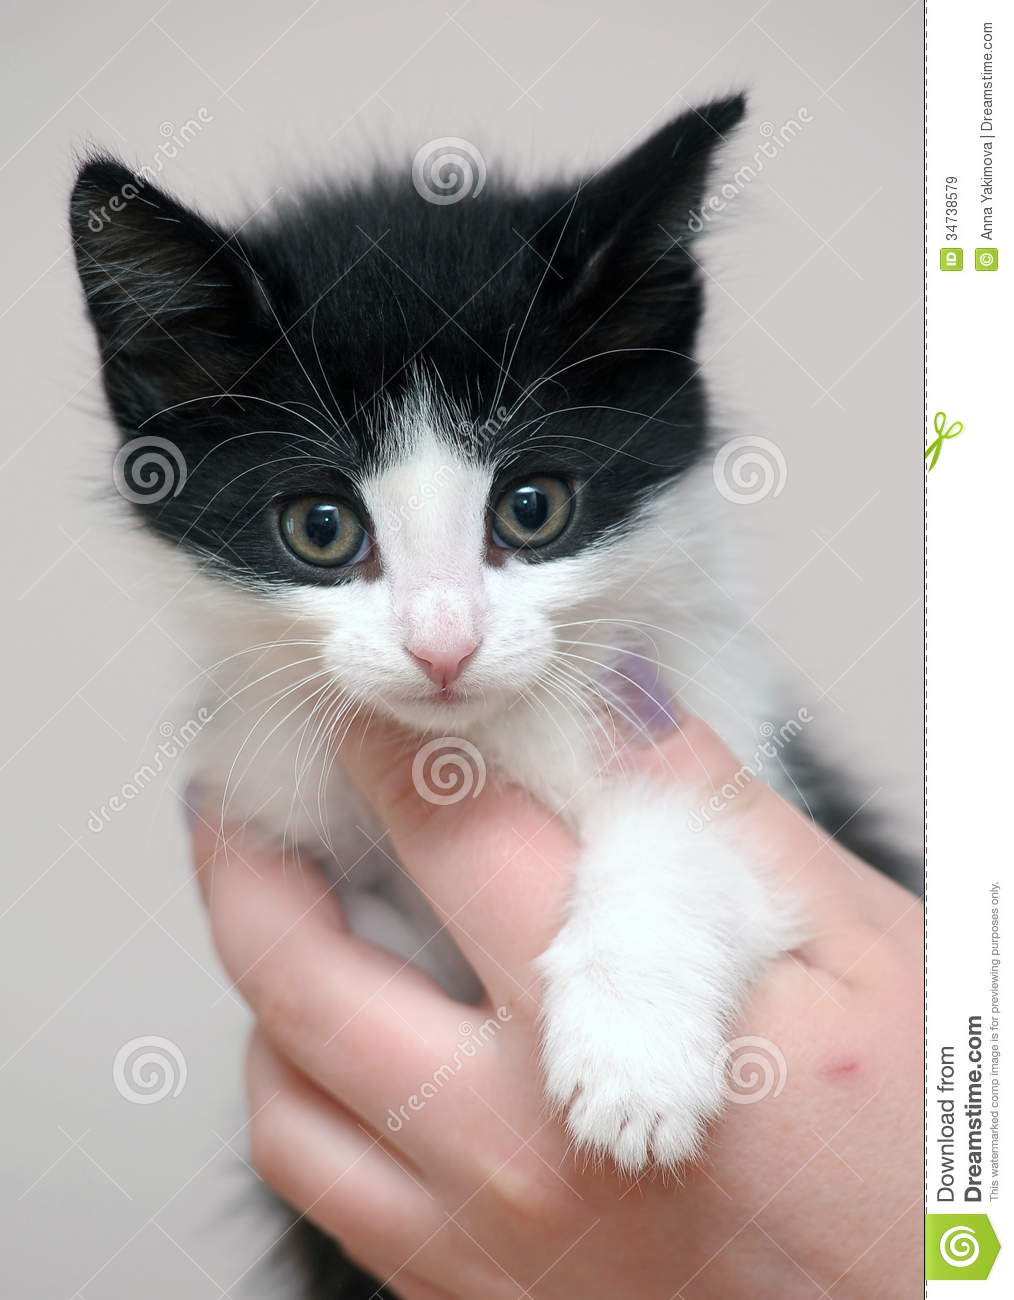 Little Cute Kitten Royalty Free Stock Images - Image: 34738579